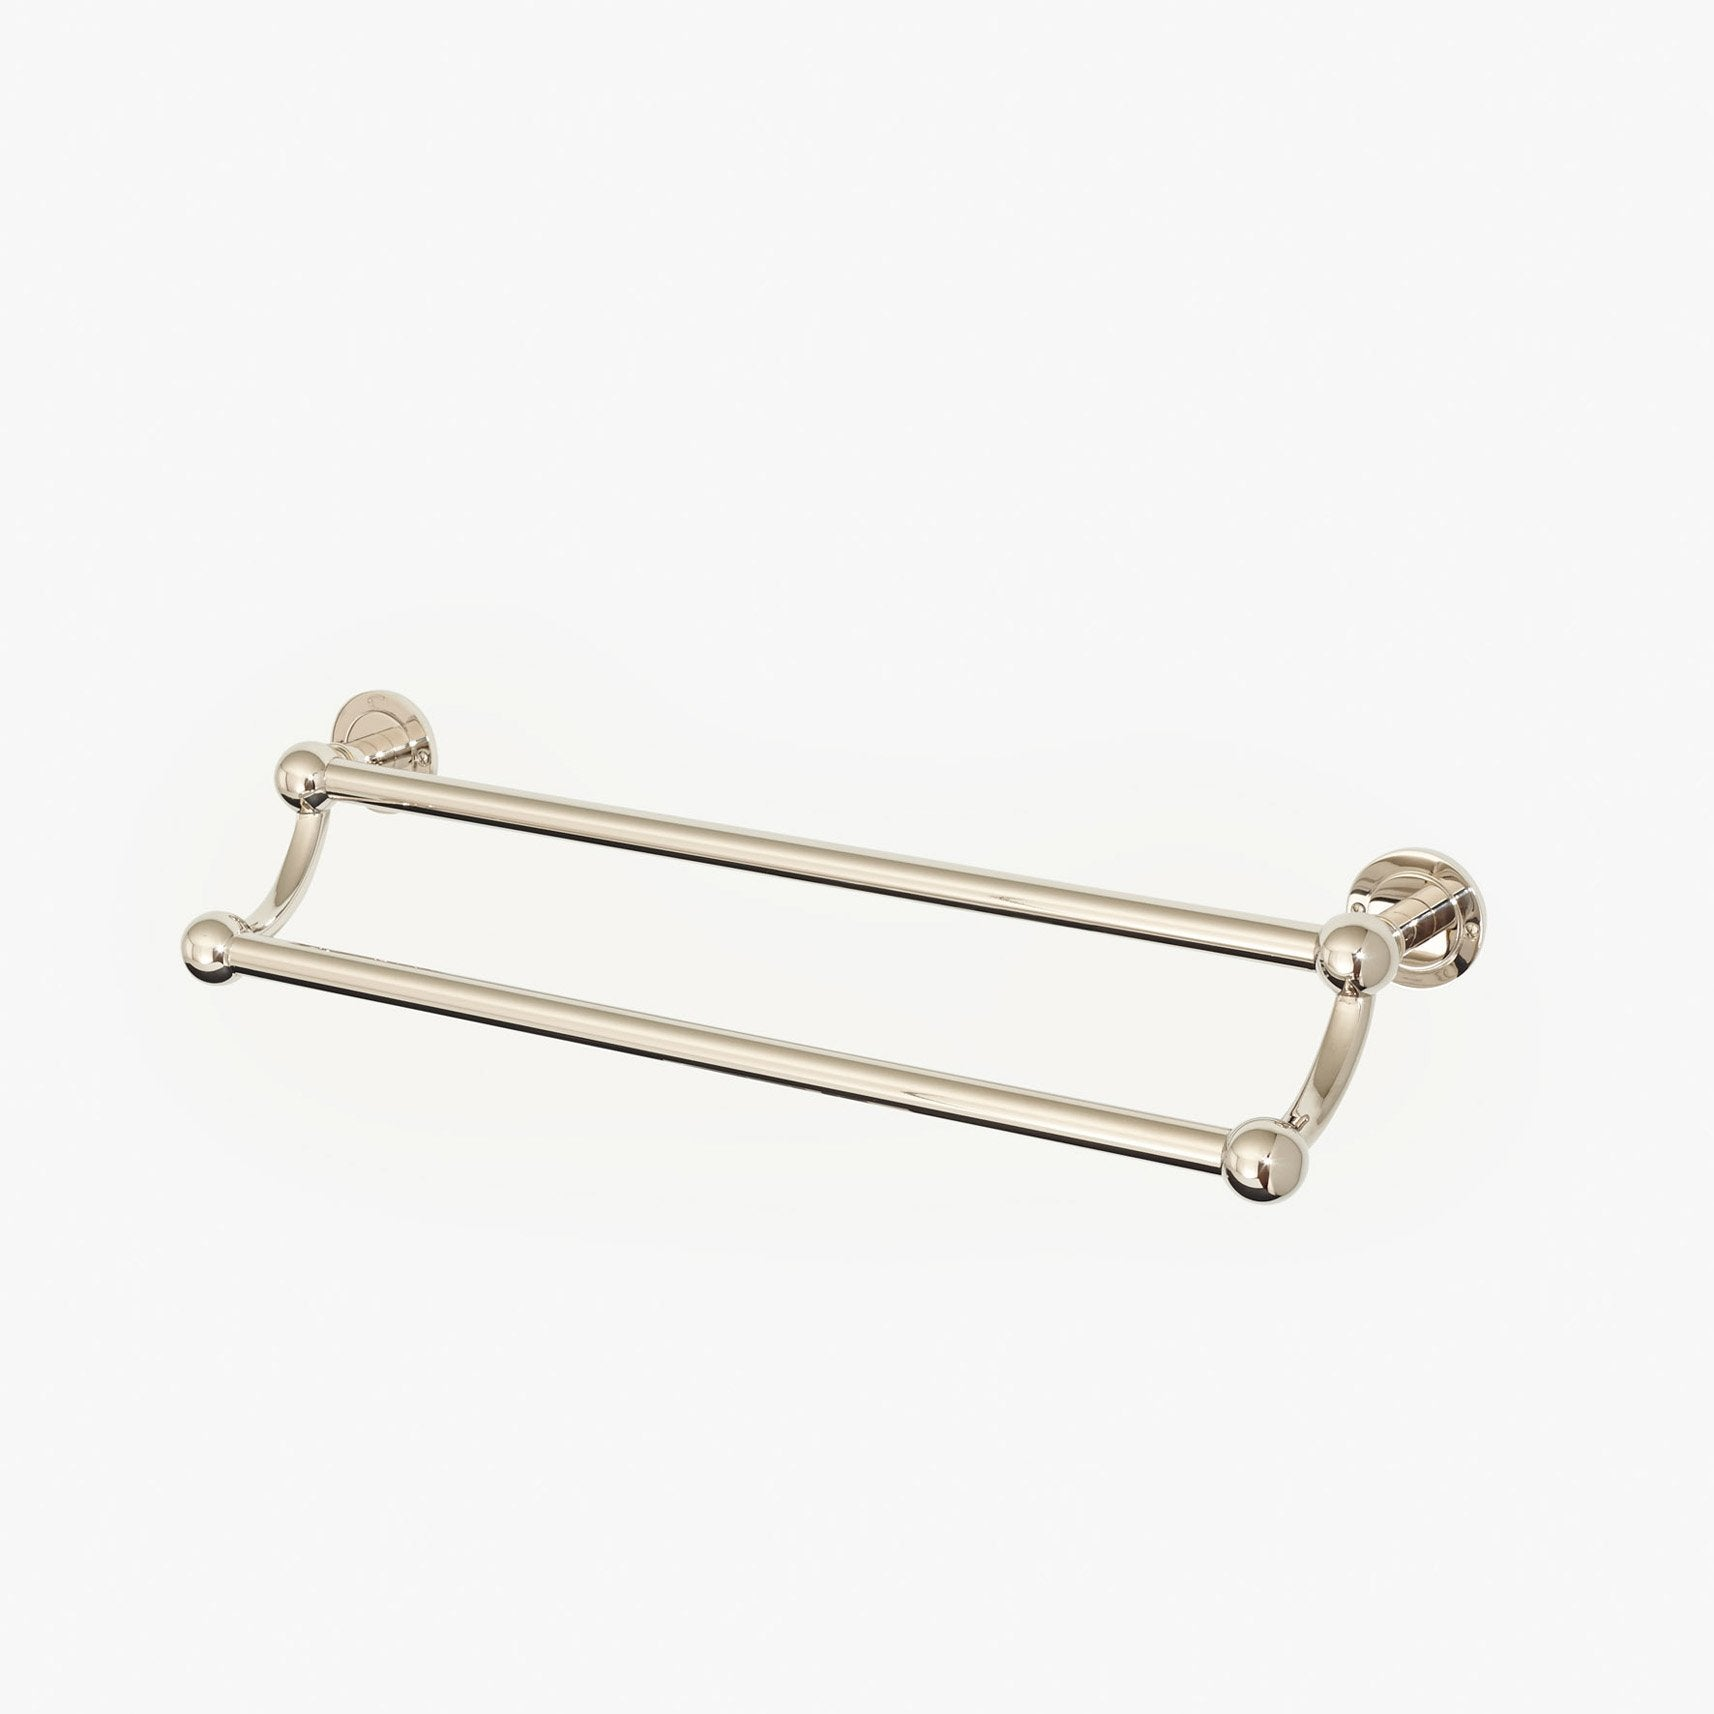 Moderna Double Towel Rail Product Image 1